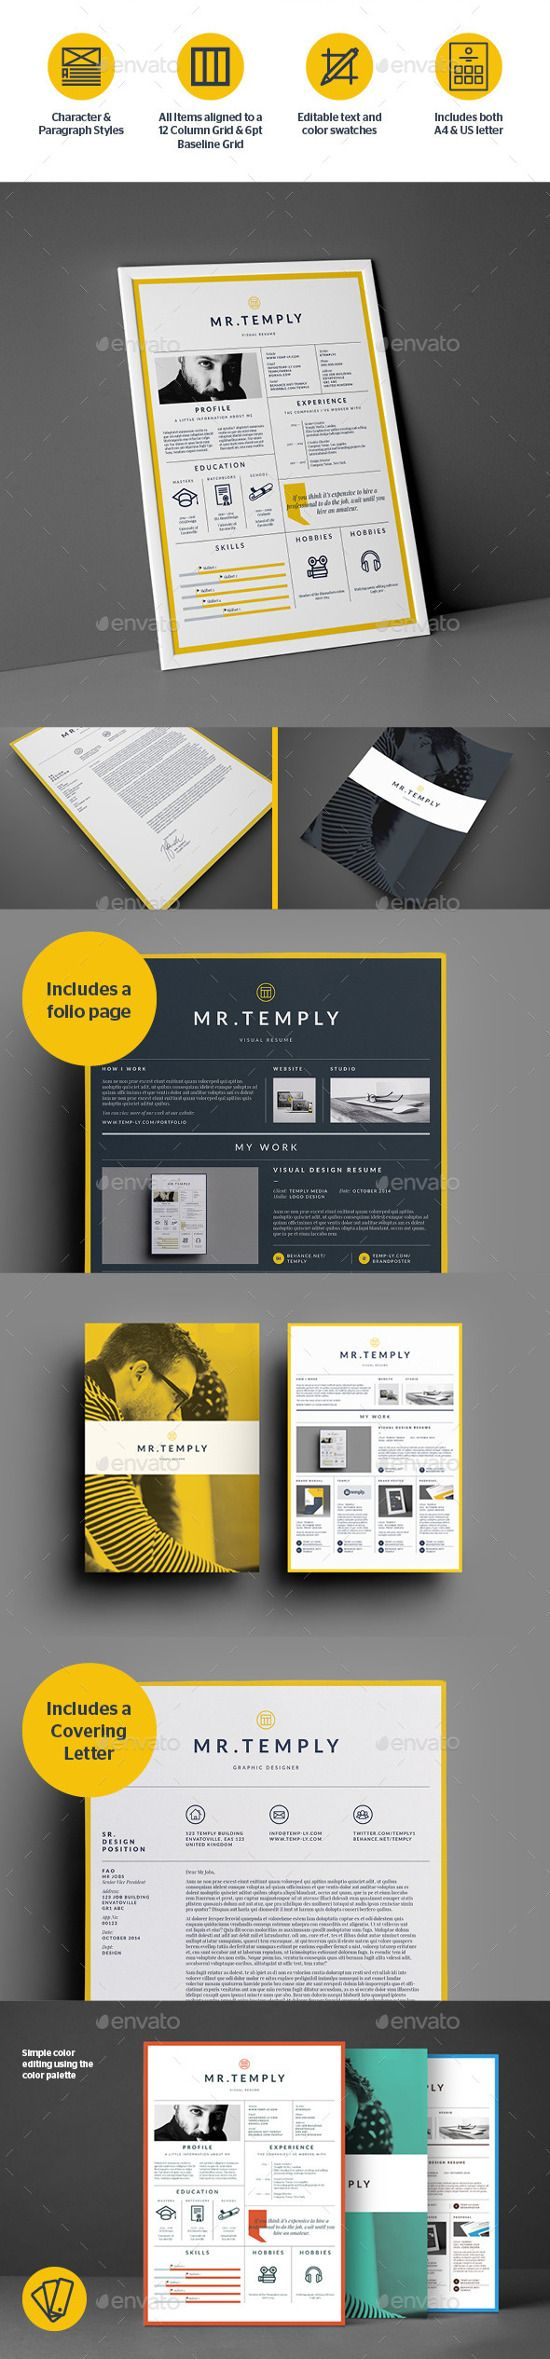 Best Infographic Resume Templates for You   Currículum, Diseño ...